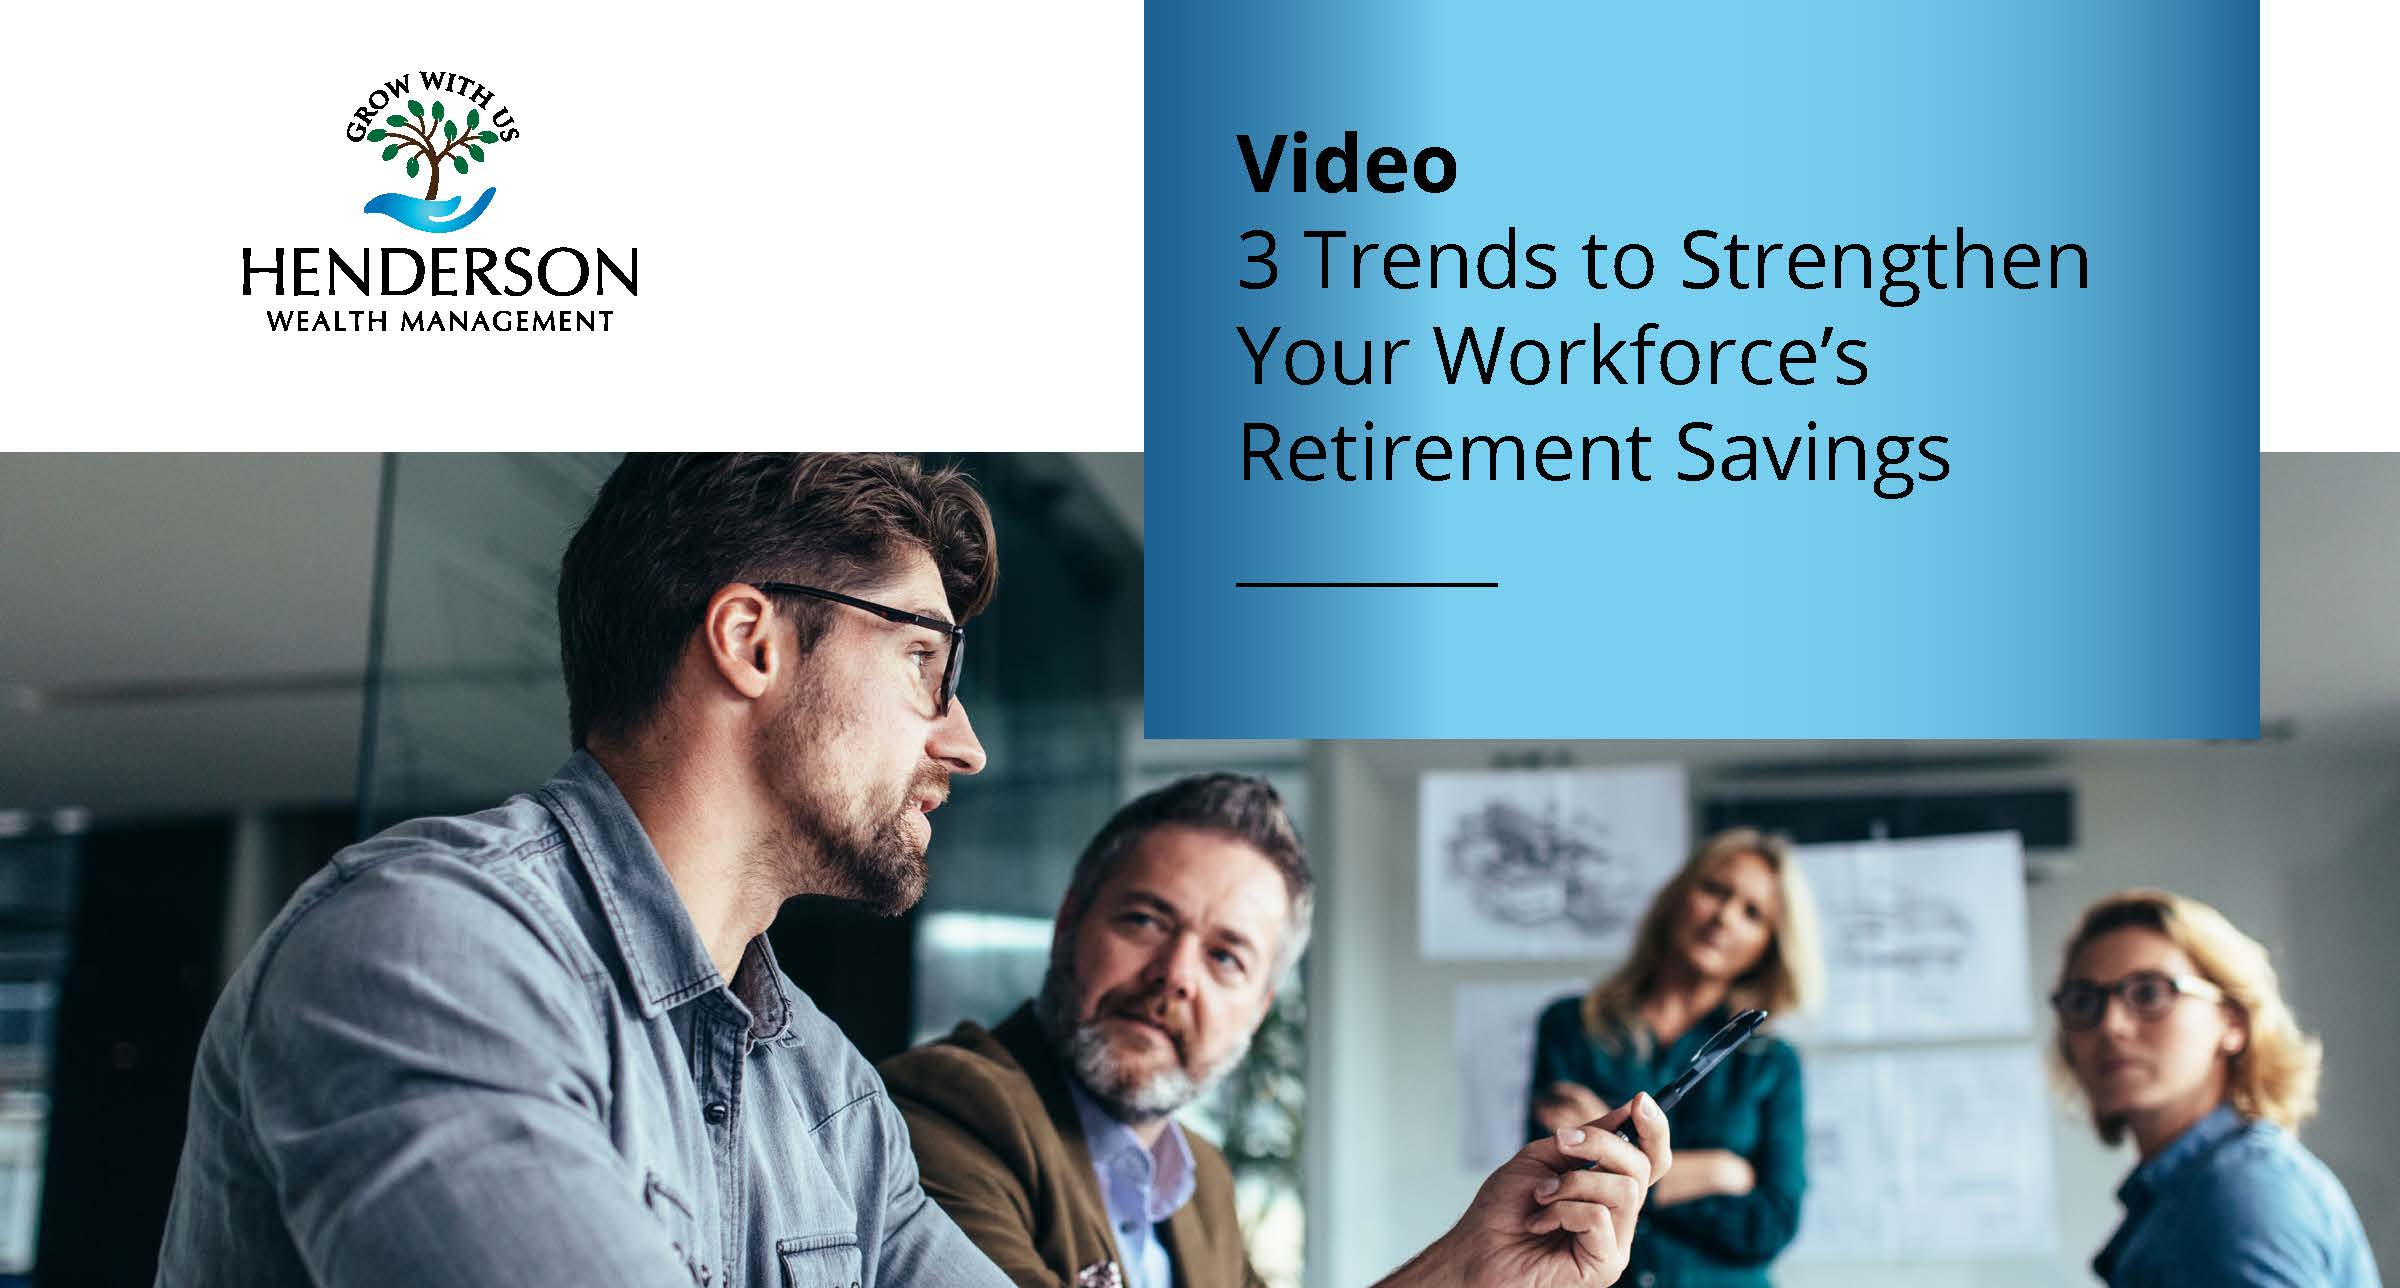 3 Trends to Help Strengthen Your Workforce's Retirement Savings